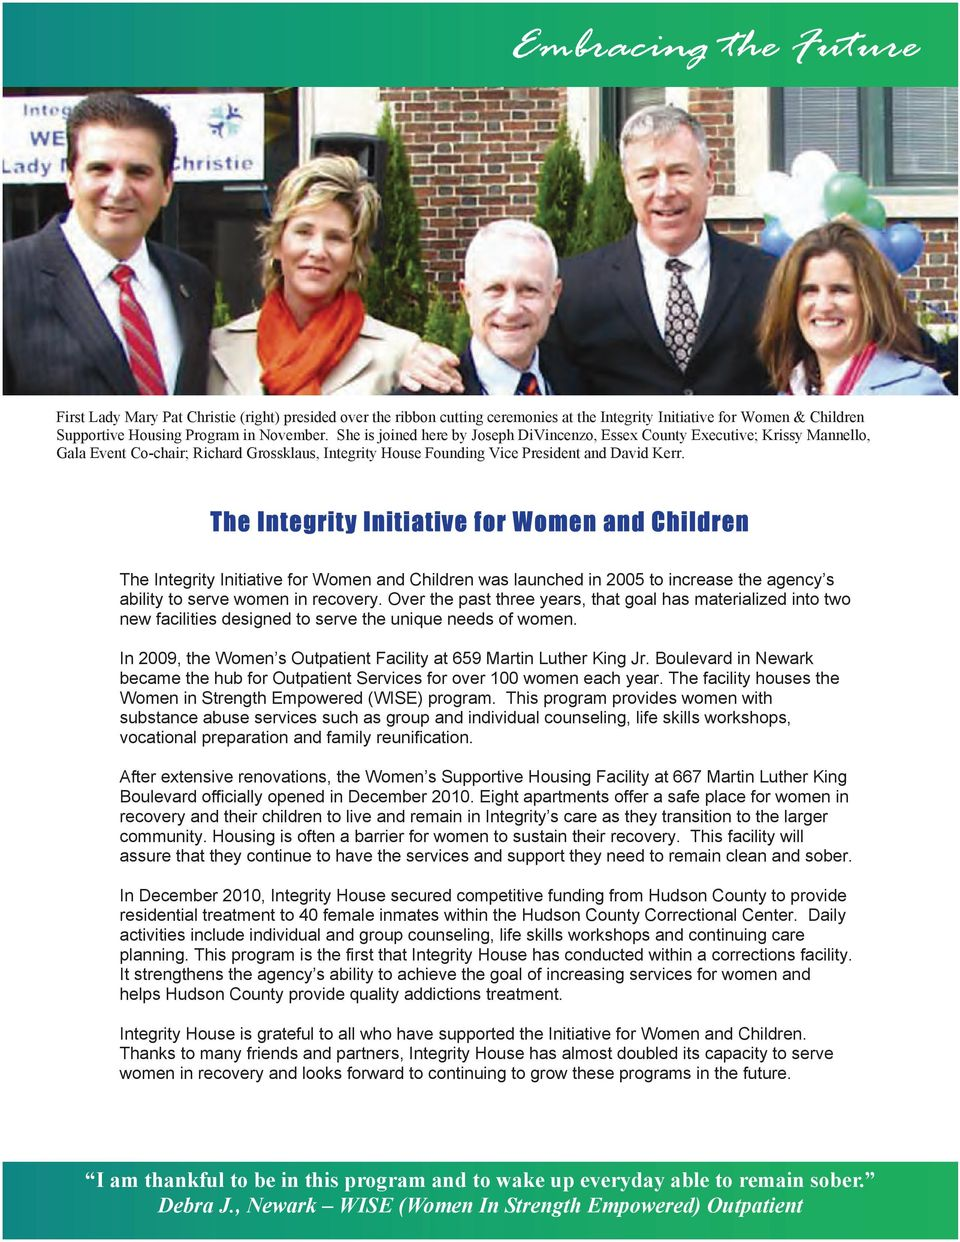 The Integrity Initiative for Women and Children The Integrity Initiative for Women and Children was launched in 2005 to increase the agency s ability to serve women in recovery.